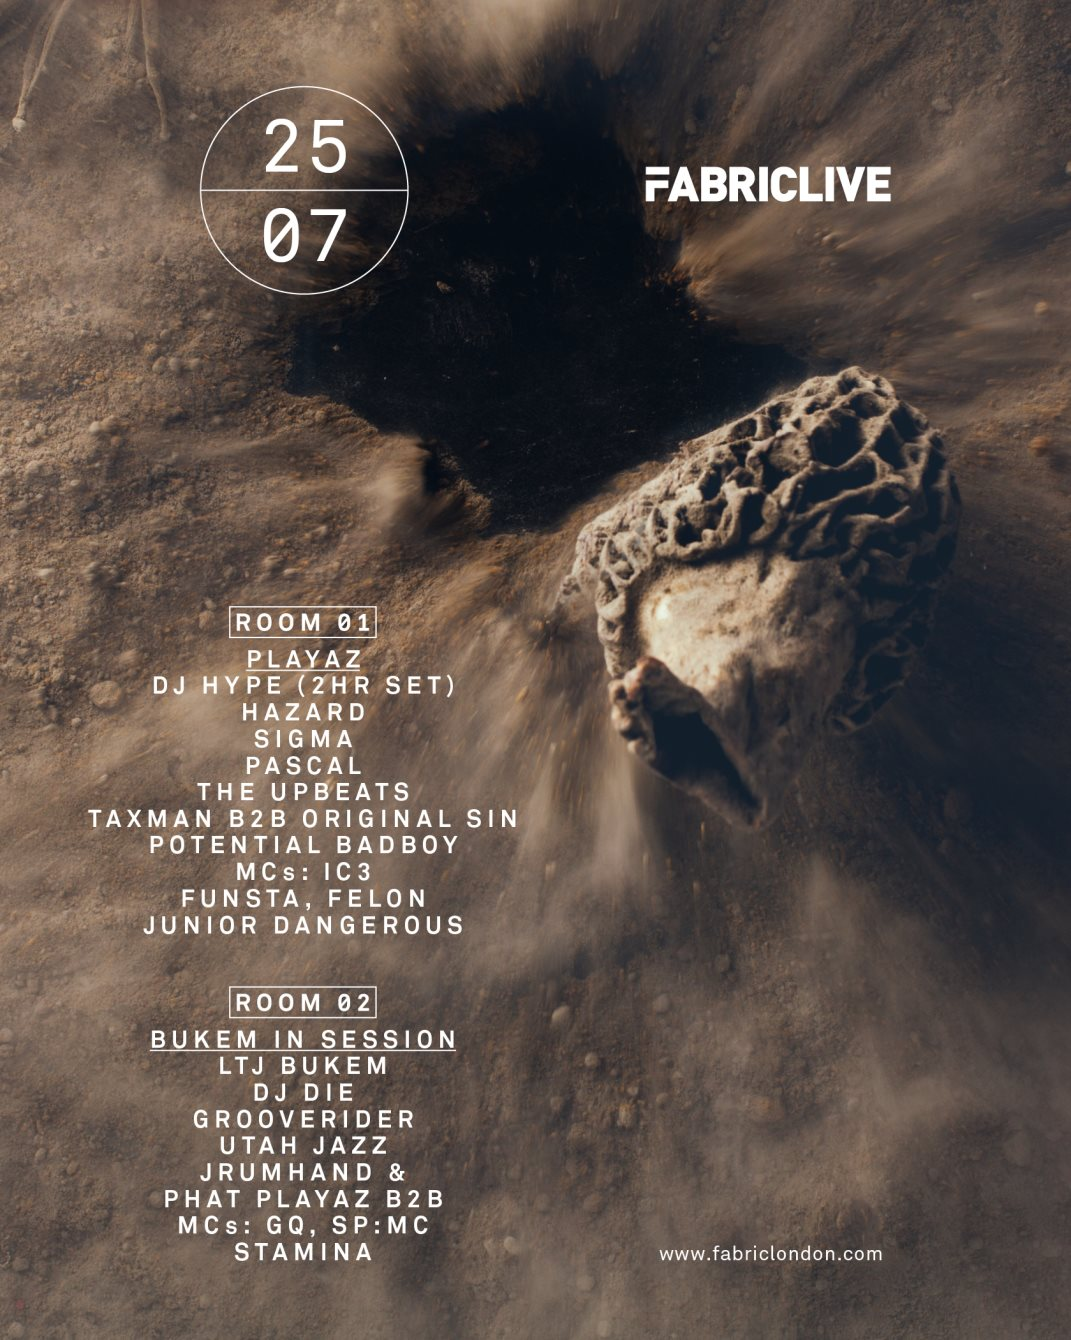 Fabriclive: Playaz & Bukem In Session at Fabric LDN